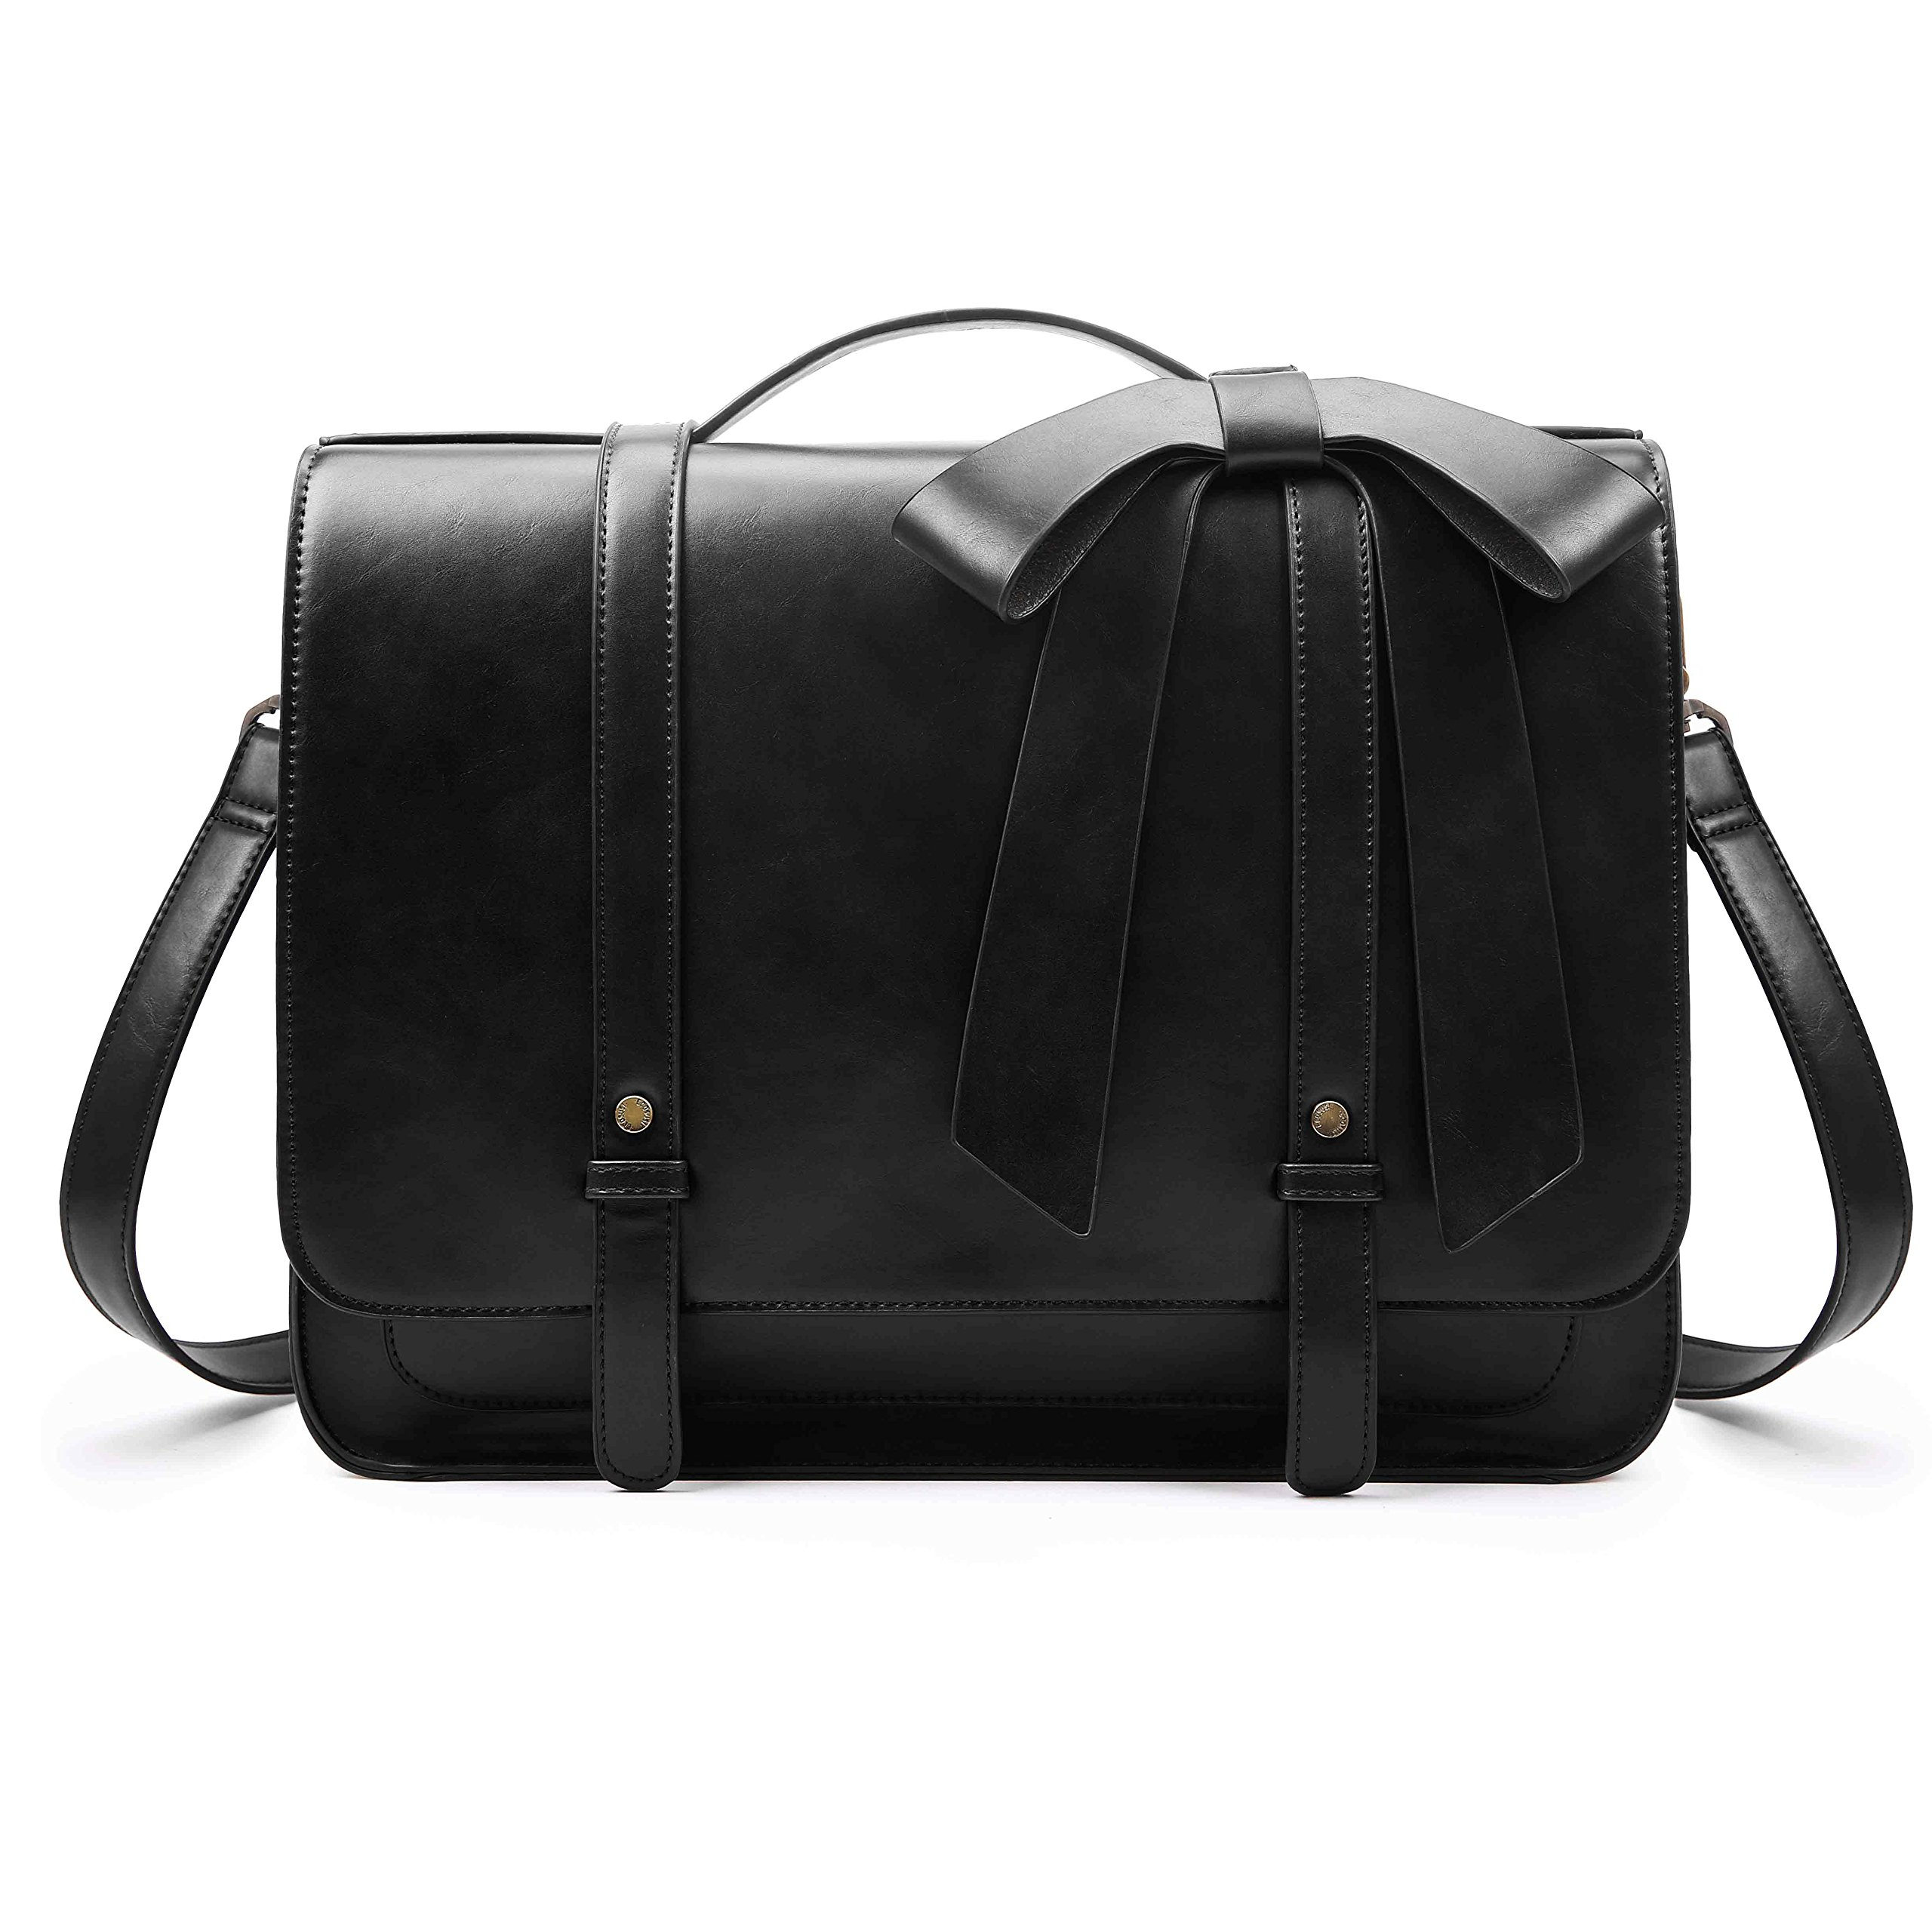 ECOSUSI Ladies Briefcase PU Leather Laptop Backpack Shoulder Satchel Computer Bag with Detachable Bow, Black